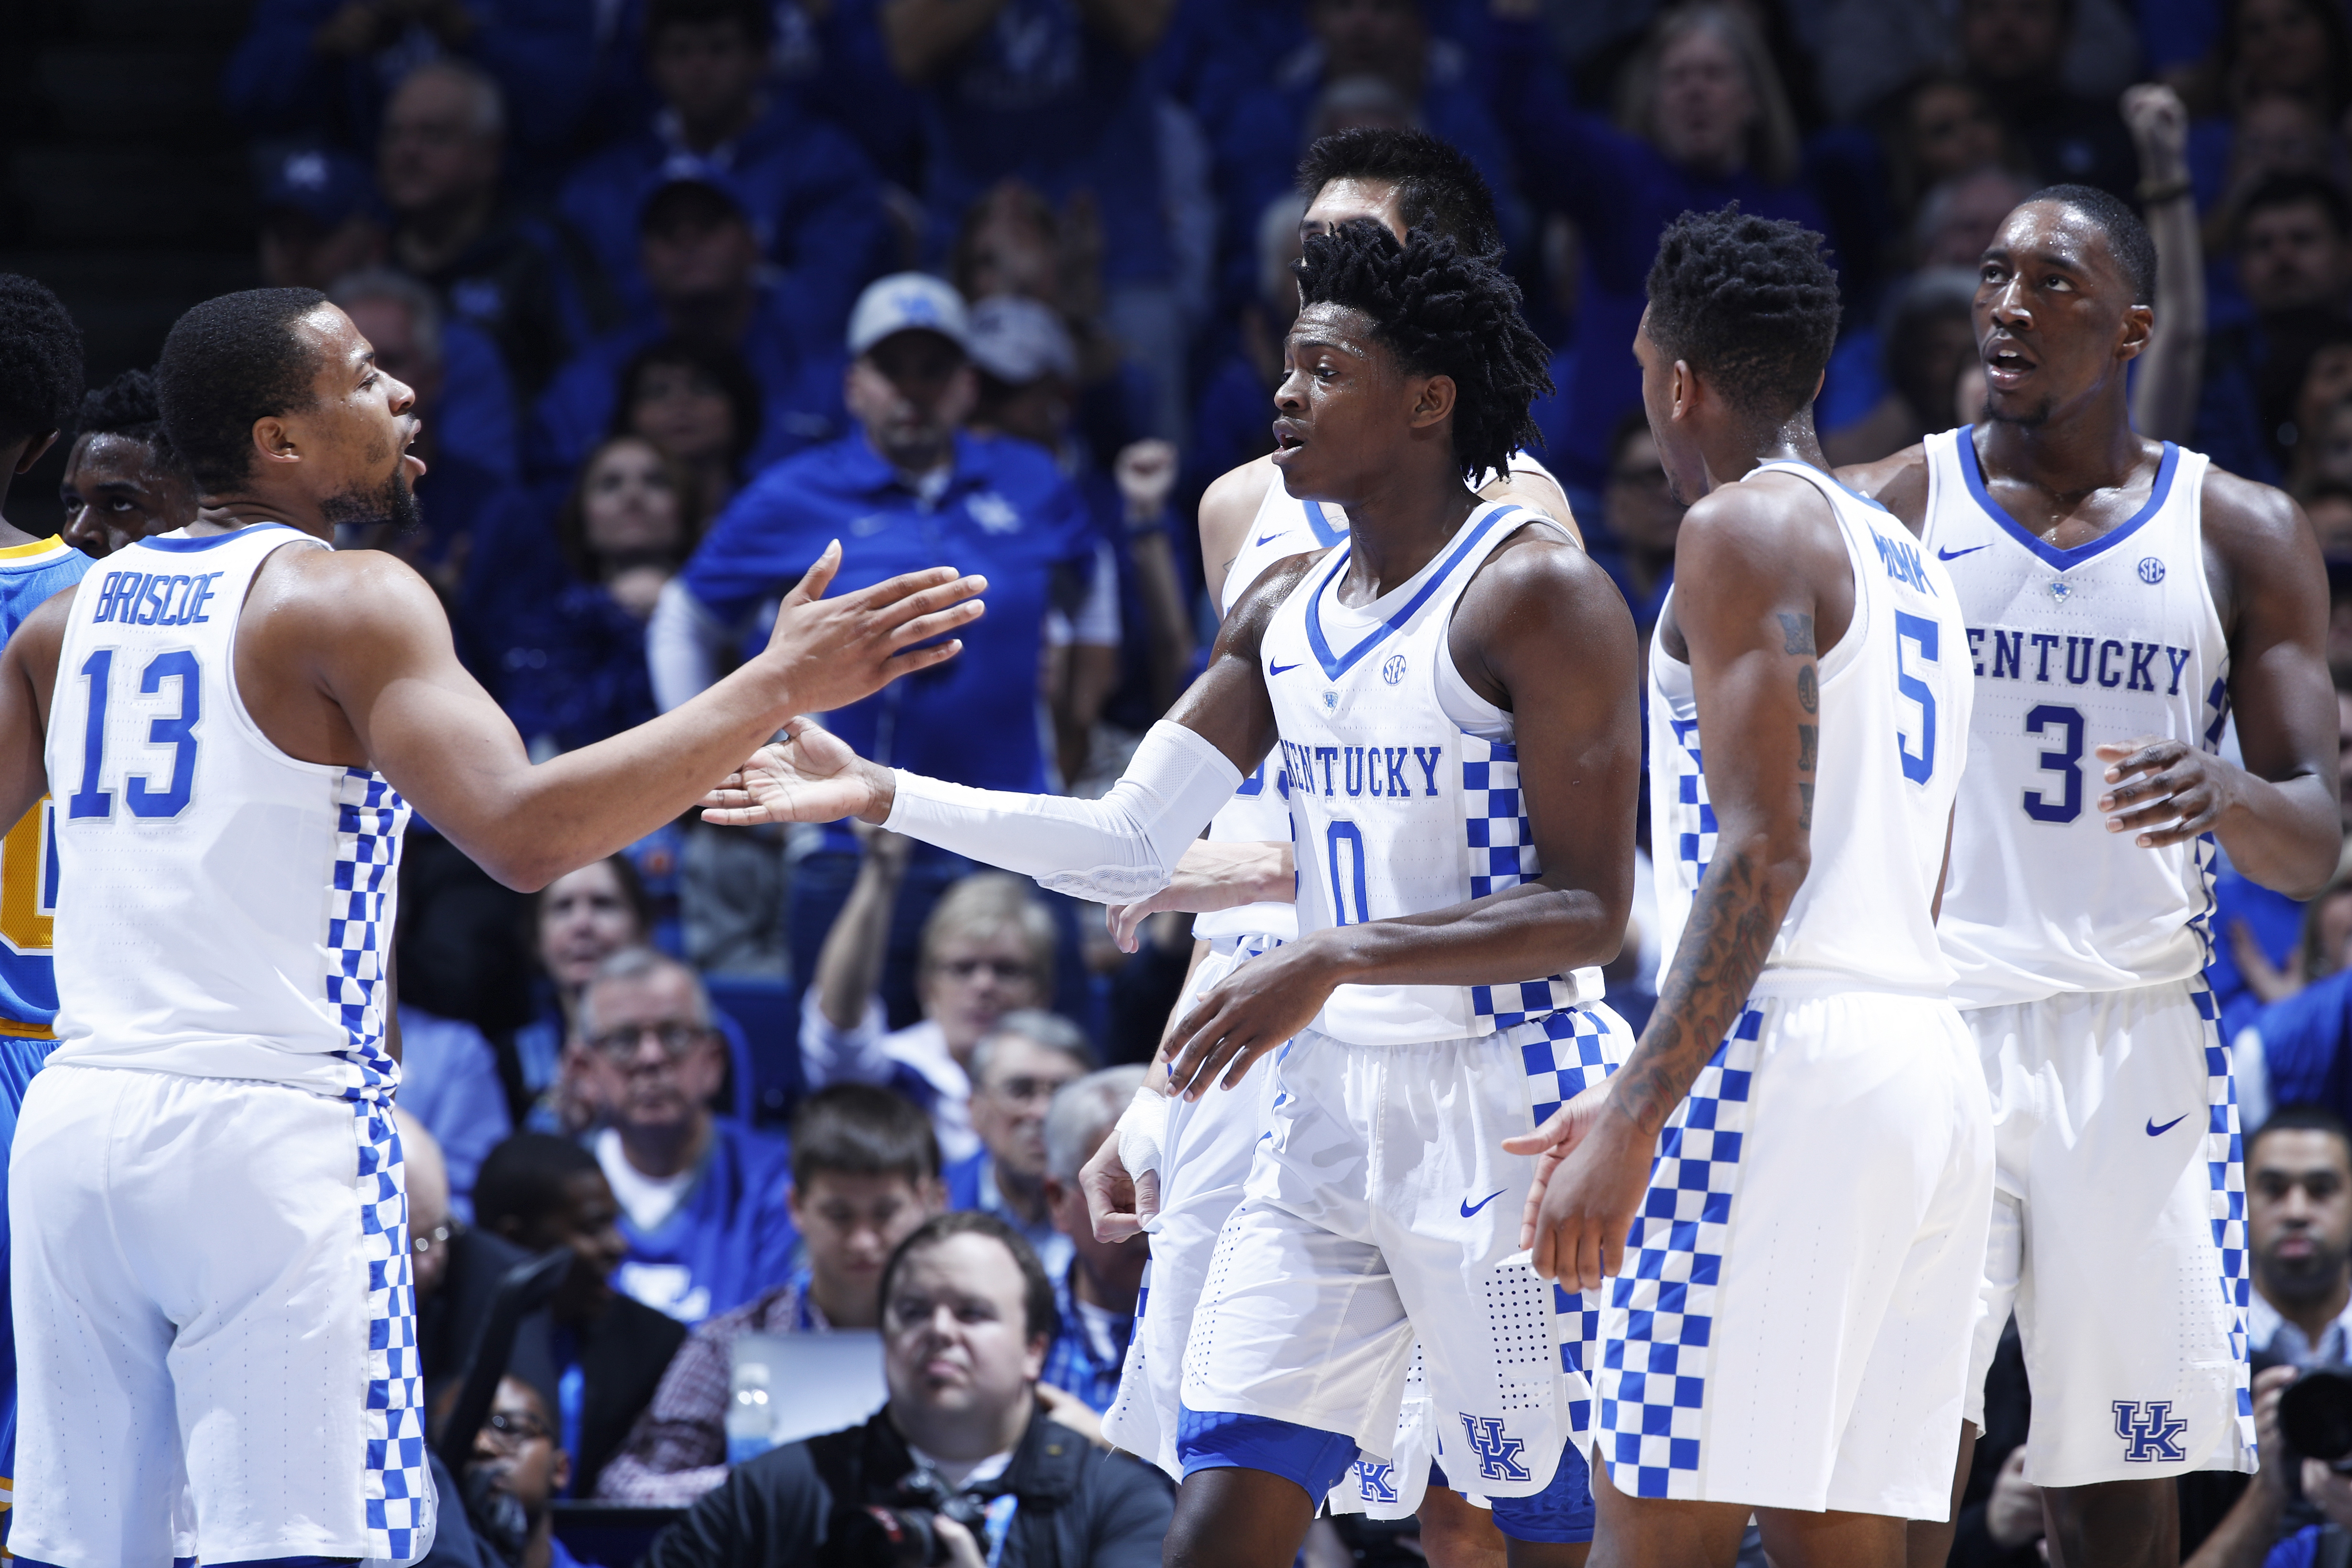 LEXINGTON, KY - DECEMBER 03: De'Aaron Fox #0 and Isaiah Briscoe #13 of the Kentucky Wildcats celebrate in the first half of the game against the UCLA Bruins at Rupp Arena on December 3, 2016 in Lexington, Kentucky. UCLA defeated Kentucky 97-92. (Photo by Joe Robbins/Getty Images)